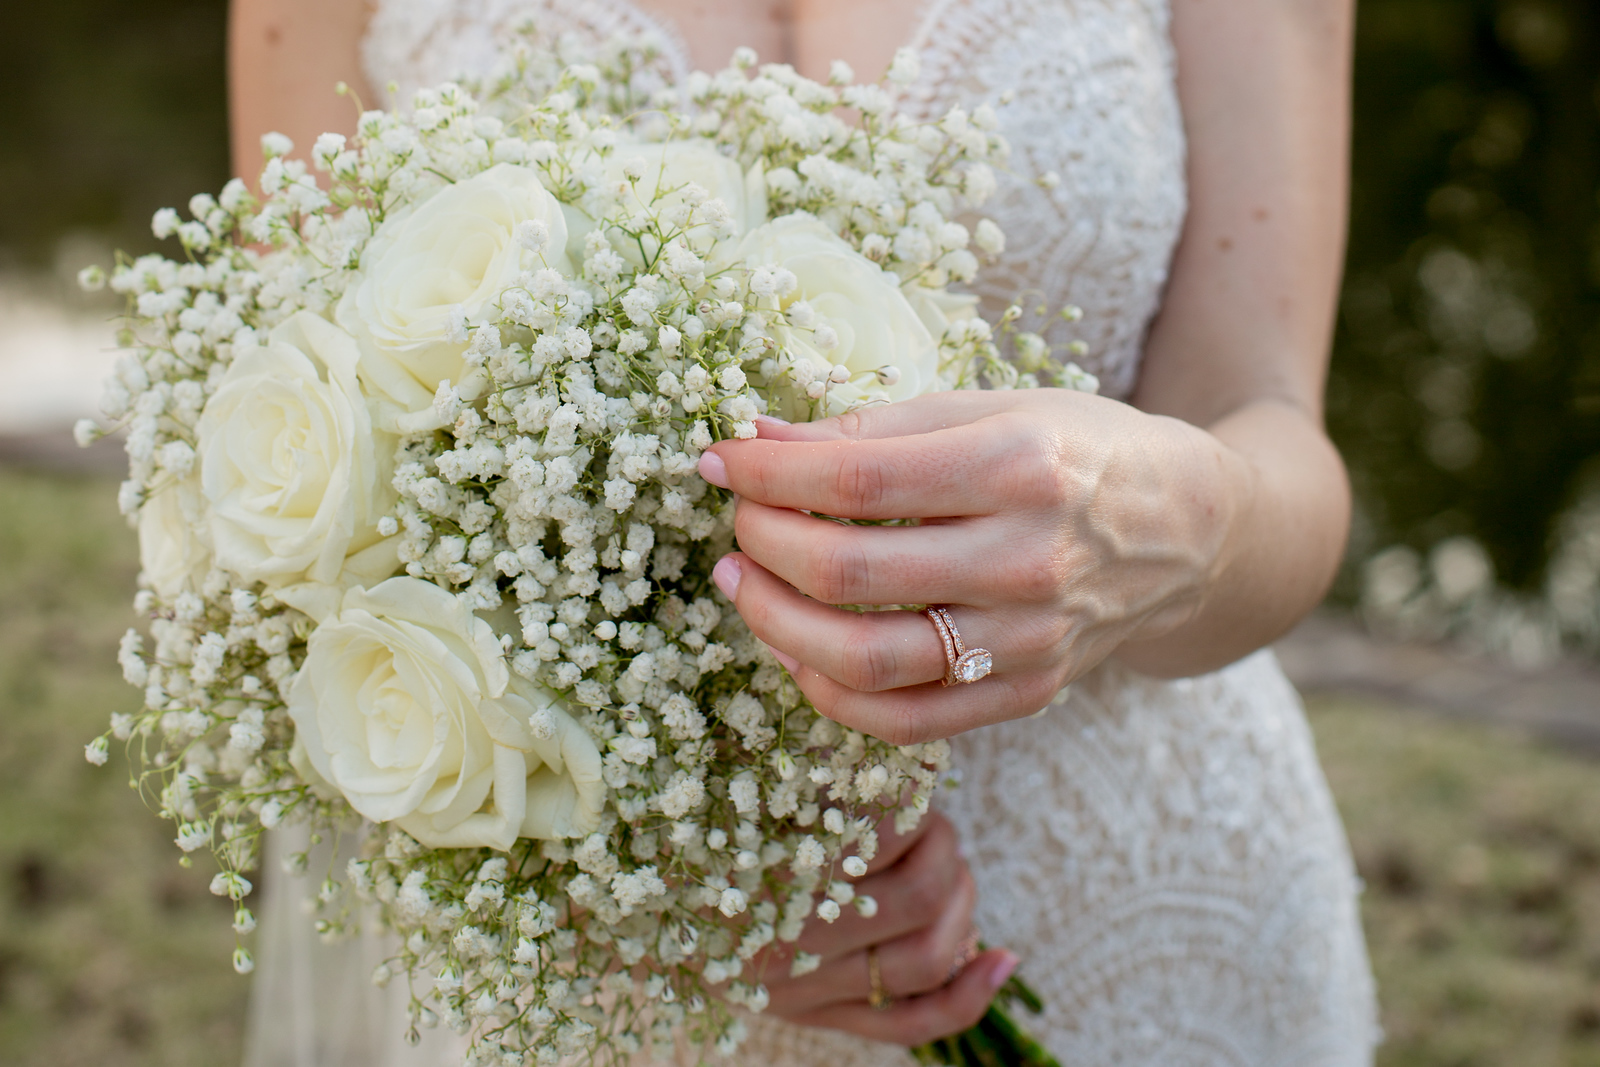 close up photo of a bride's engagement ring and bouquet